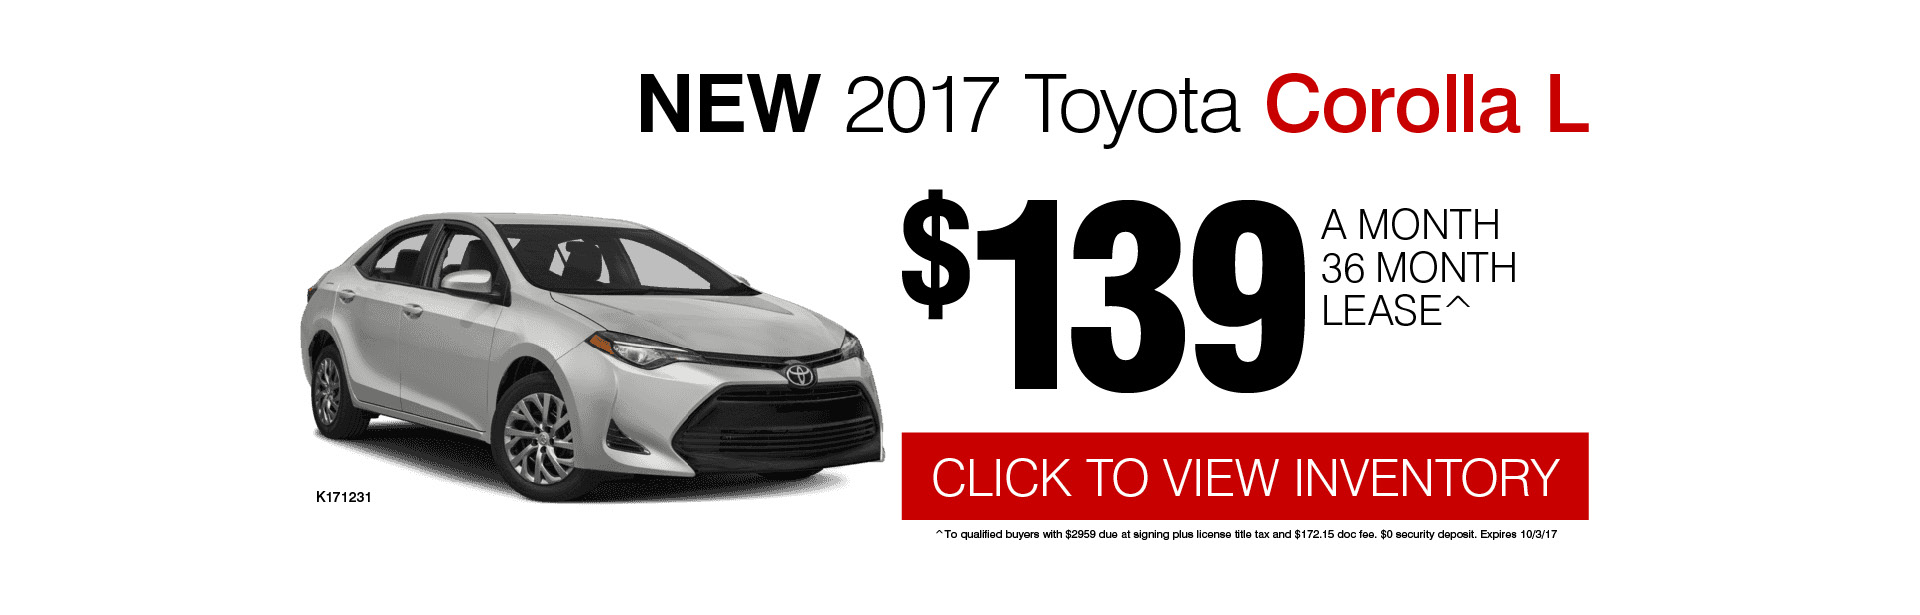 Save on Your 2017 Corolla L Lease at Grossinger City Toyota in Chicago, IL